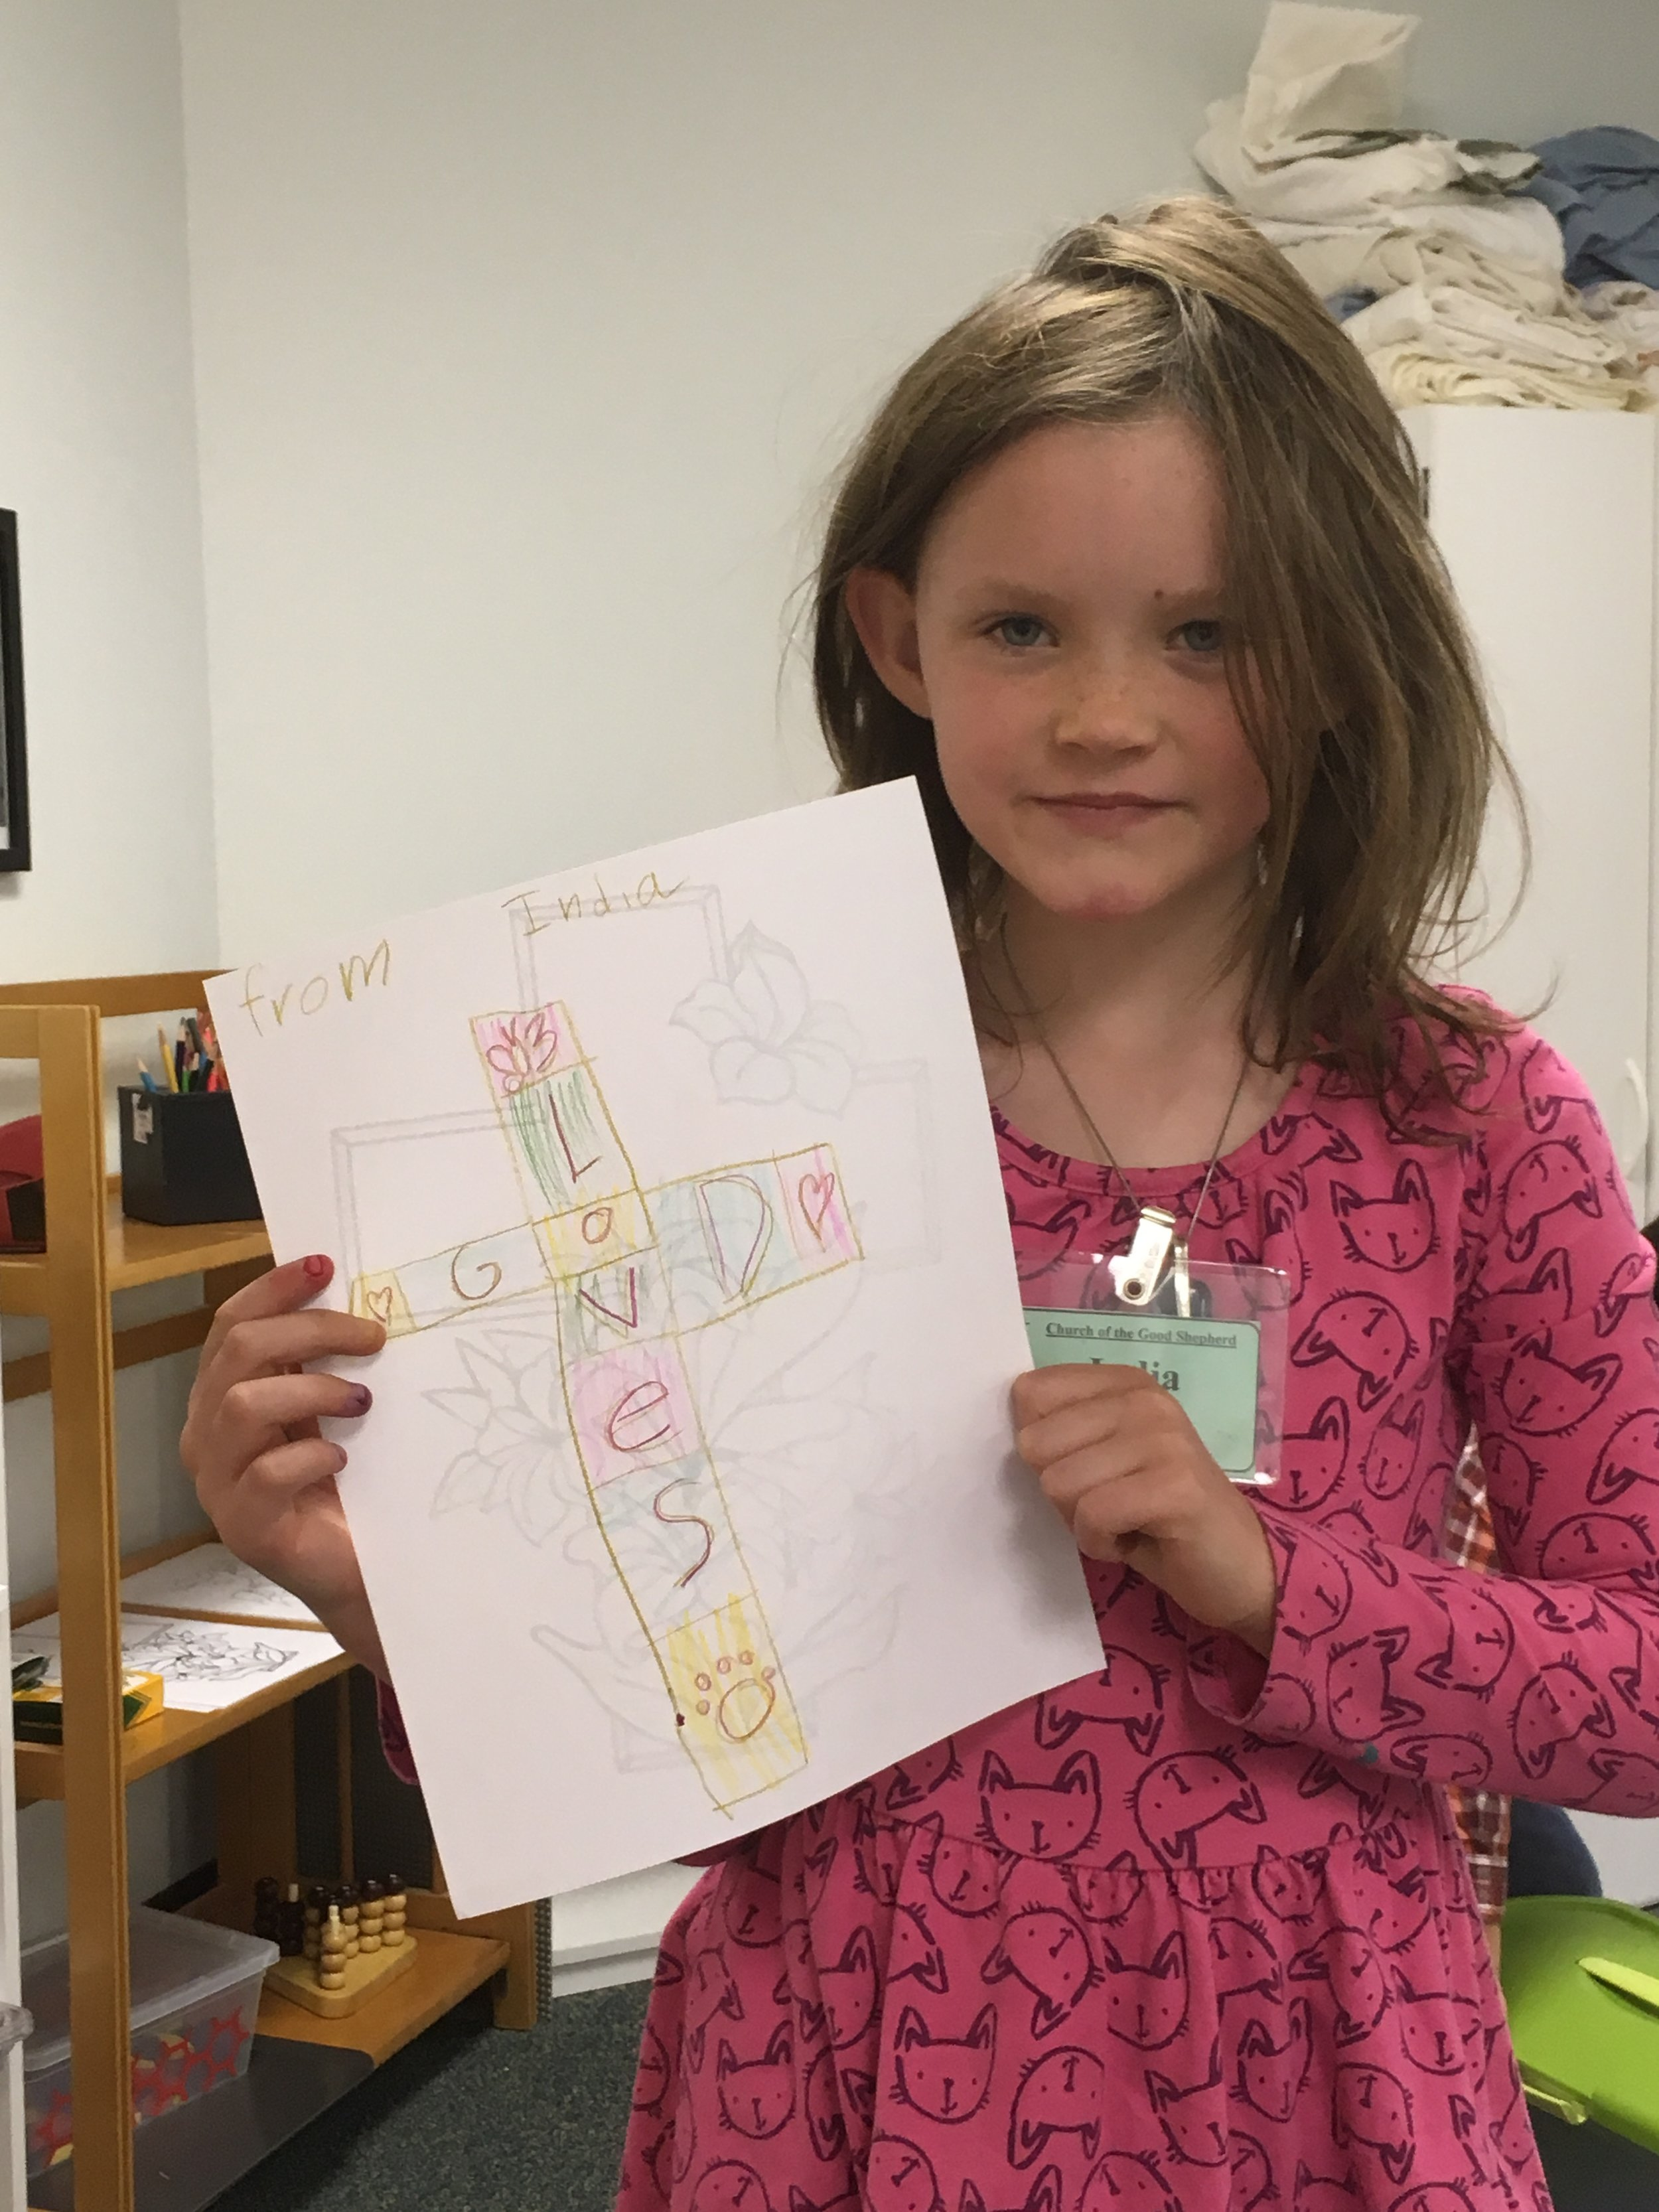 Godly Play student, India, shows off her artwork